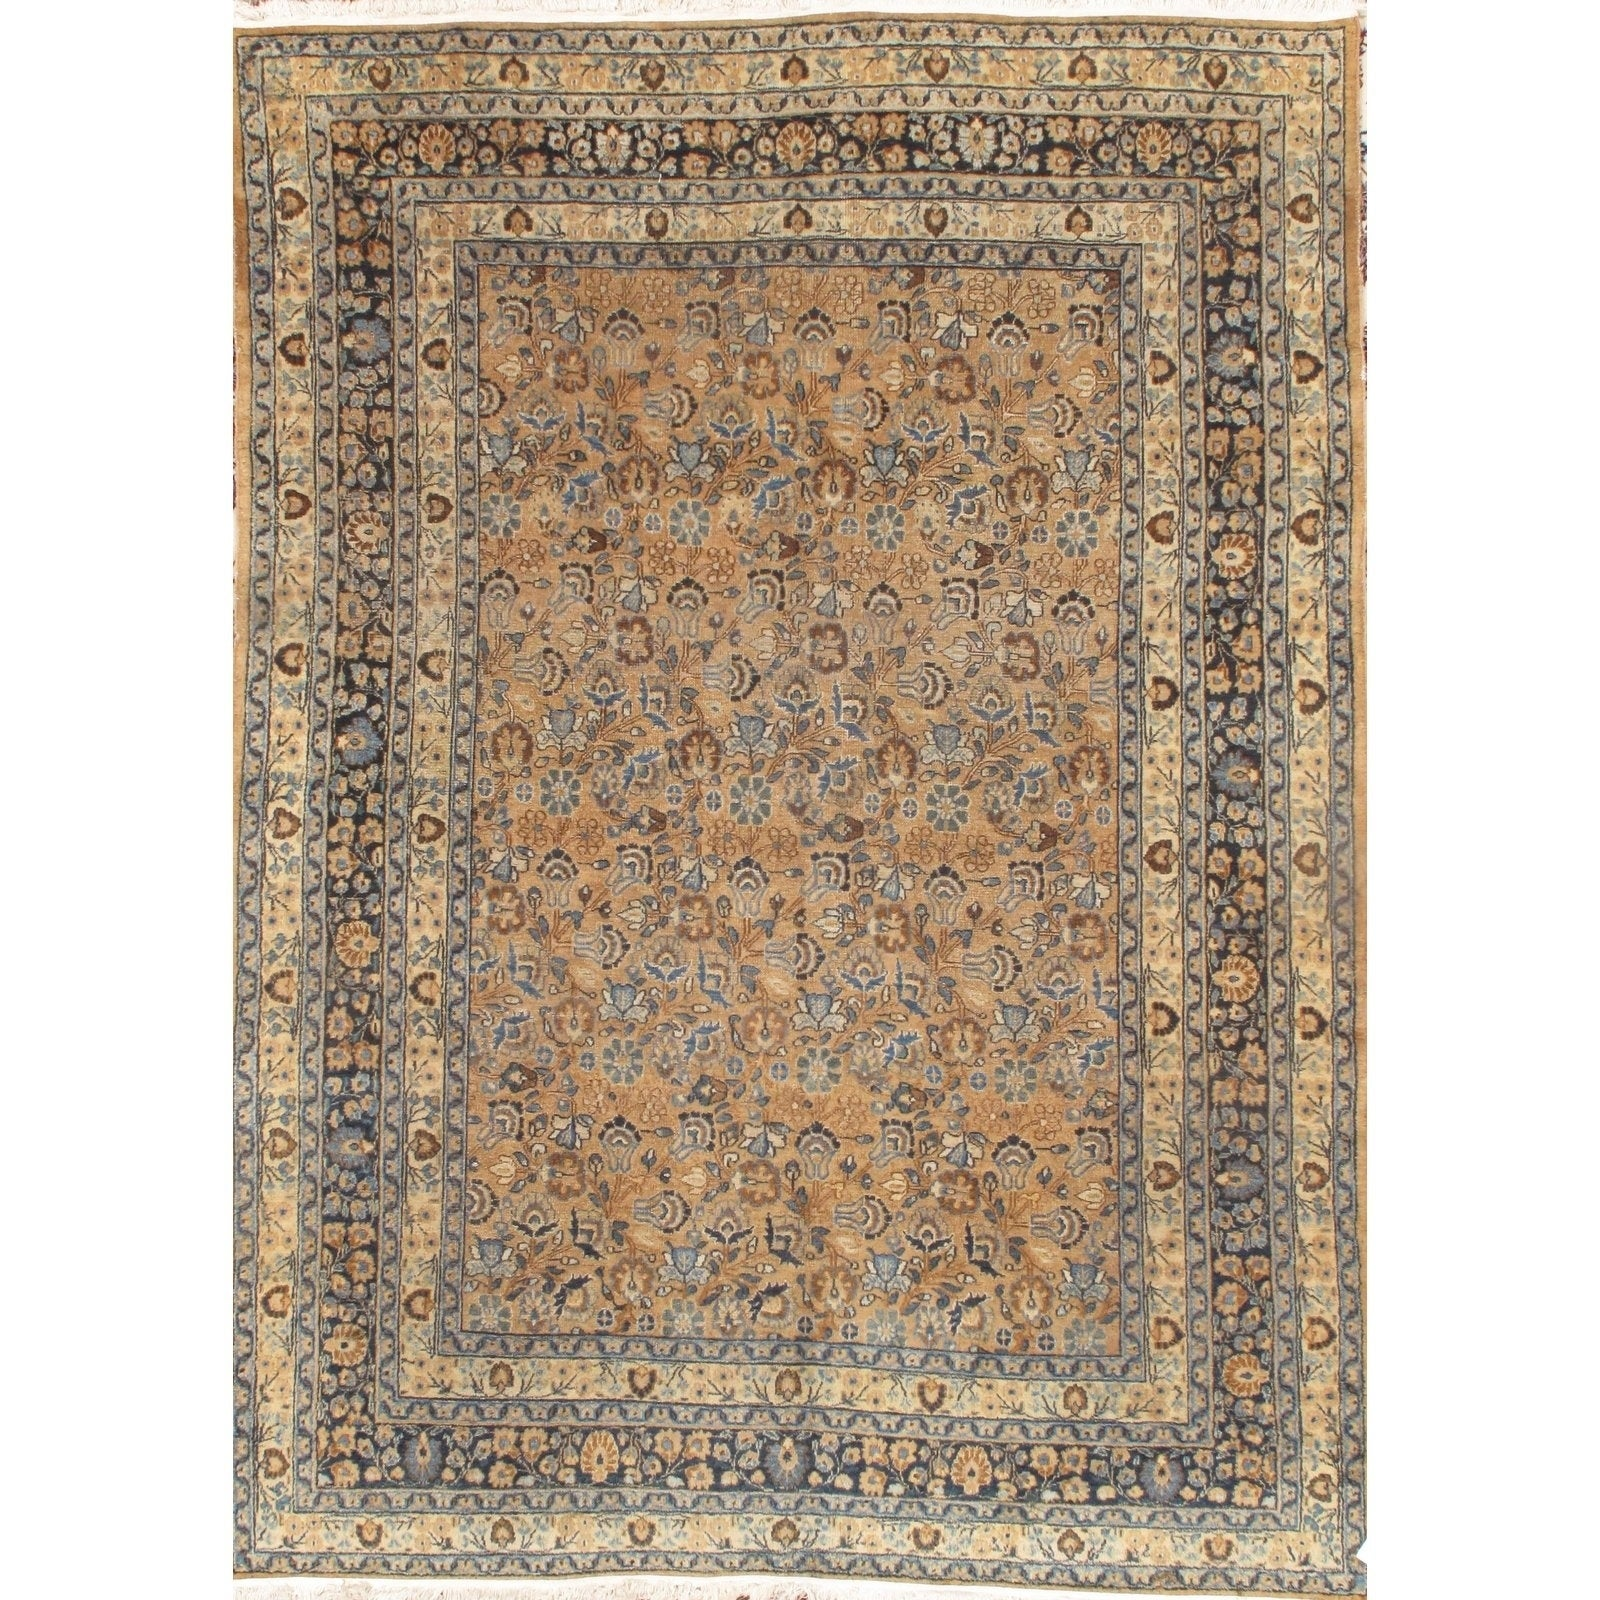 Pasargad DC Persian Mashad Hand Knotted Rug - 7′1″ × 10′ (Brown/Beige)